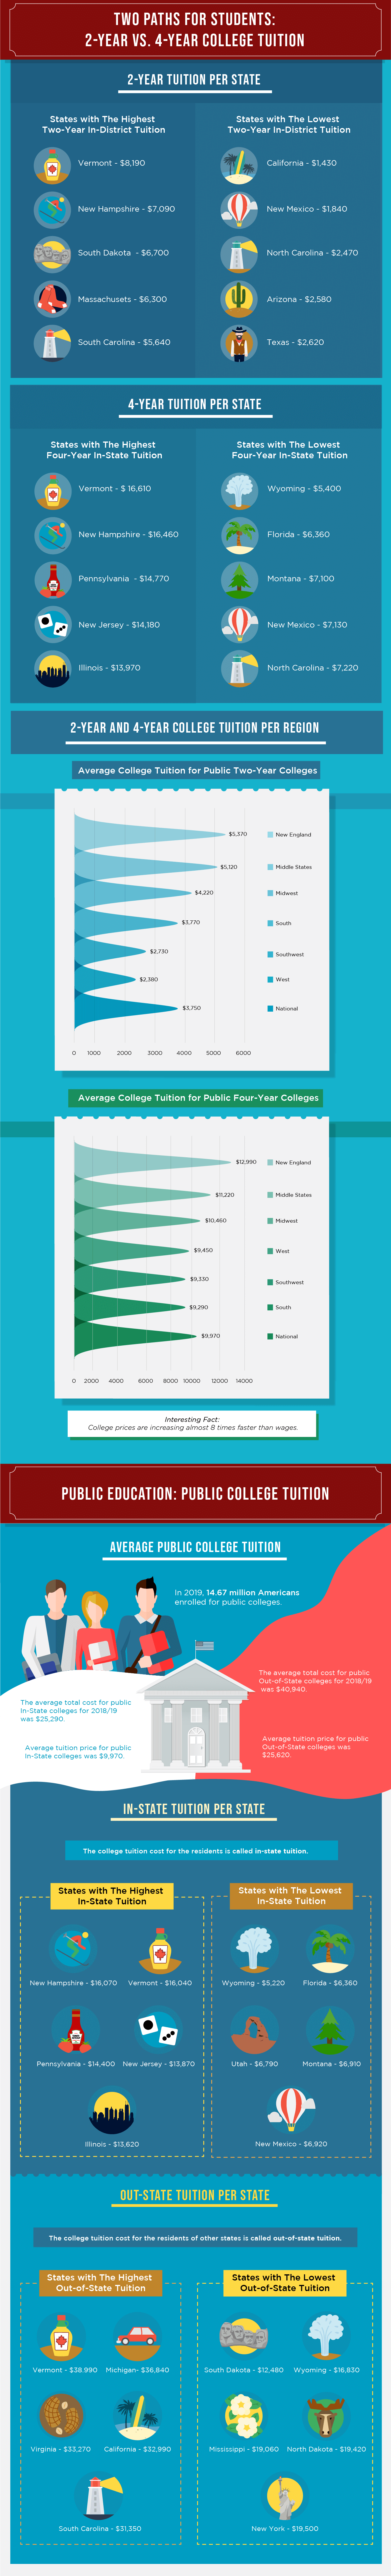 Average College Tuition In America [Infographic] 2